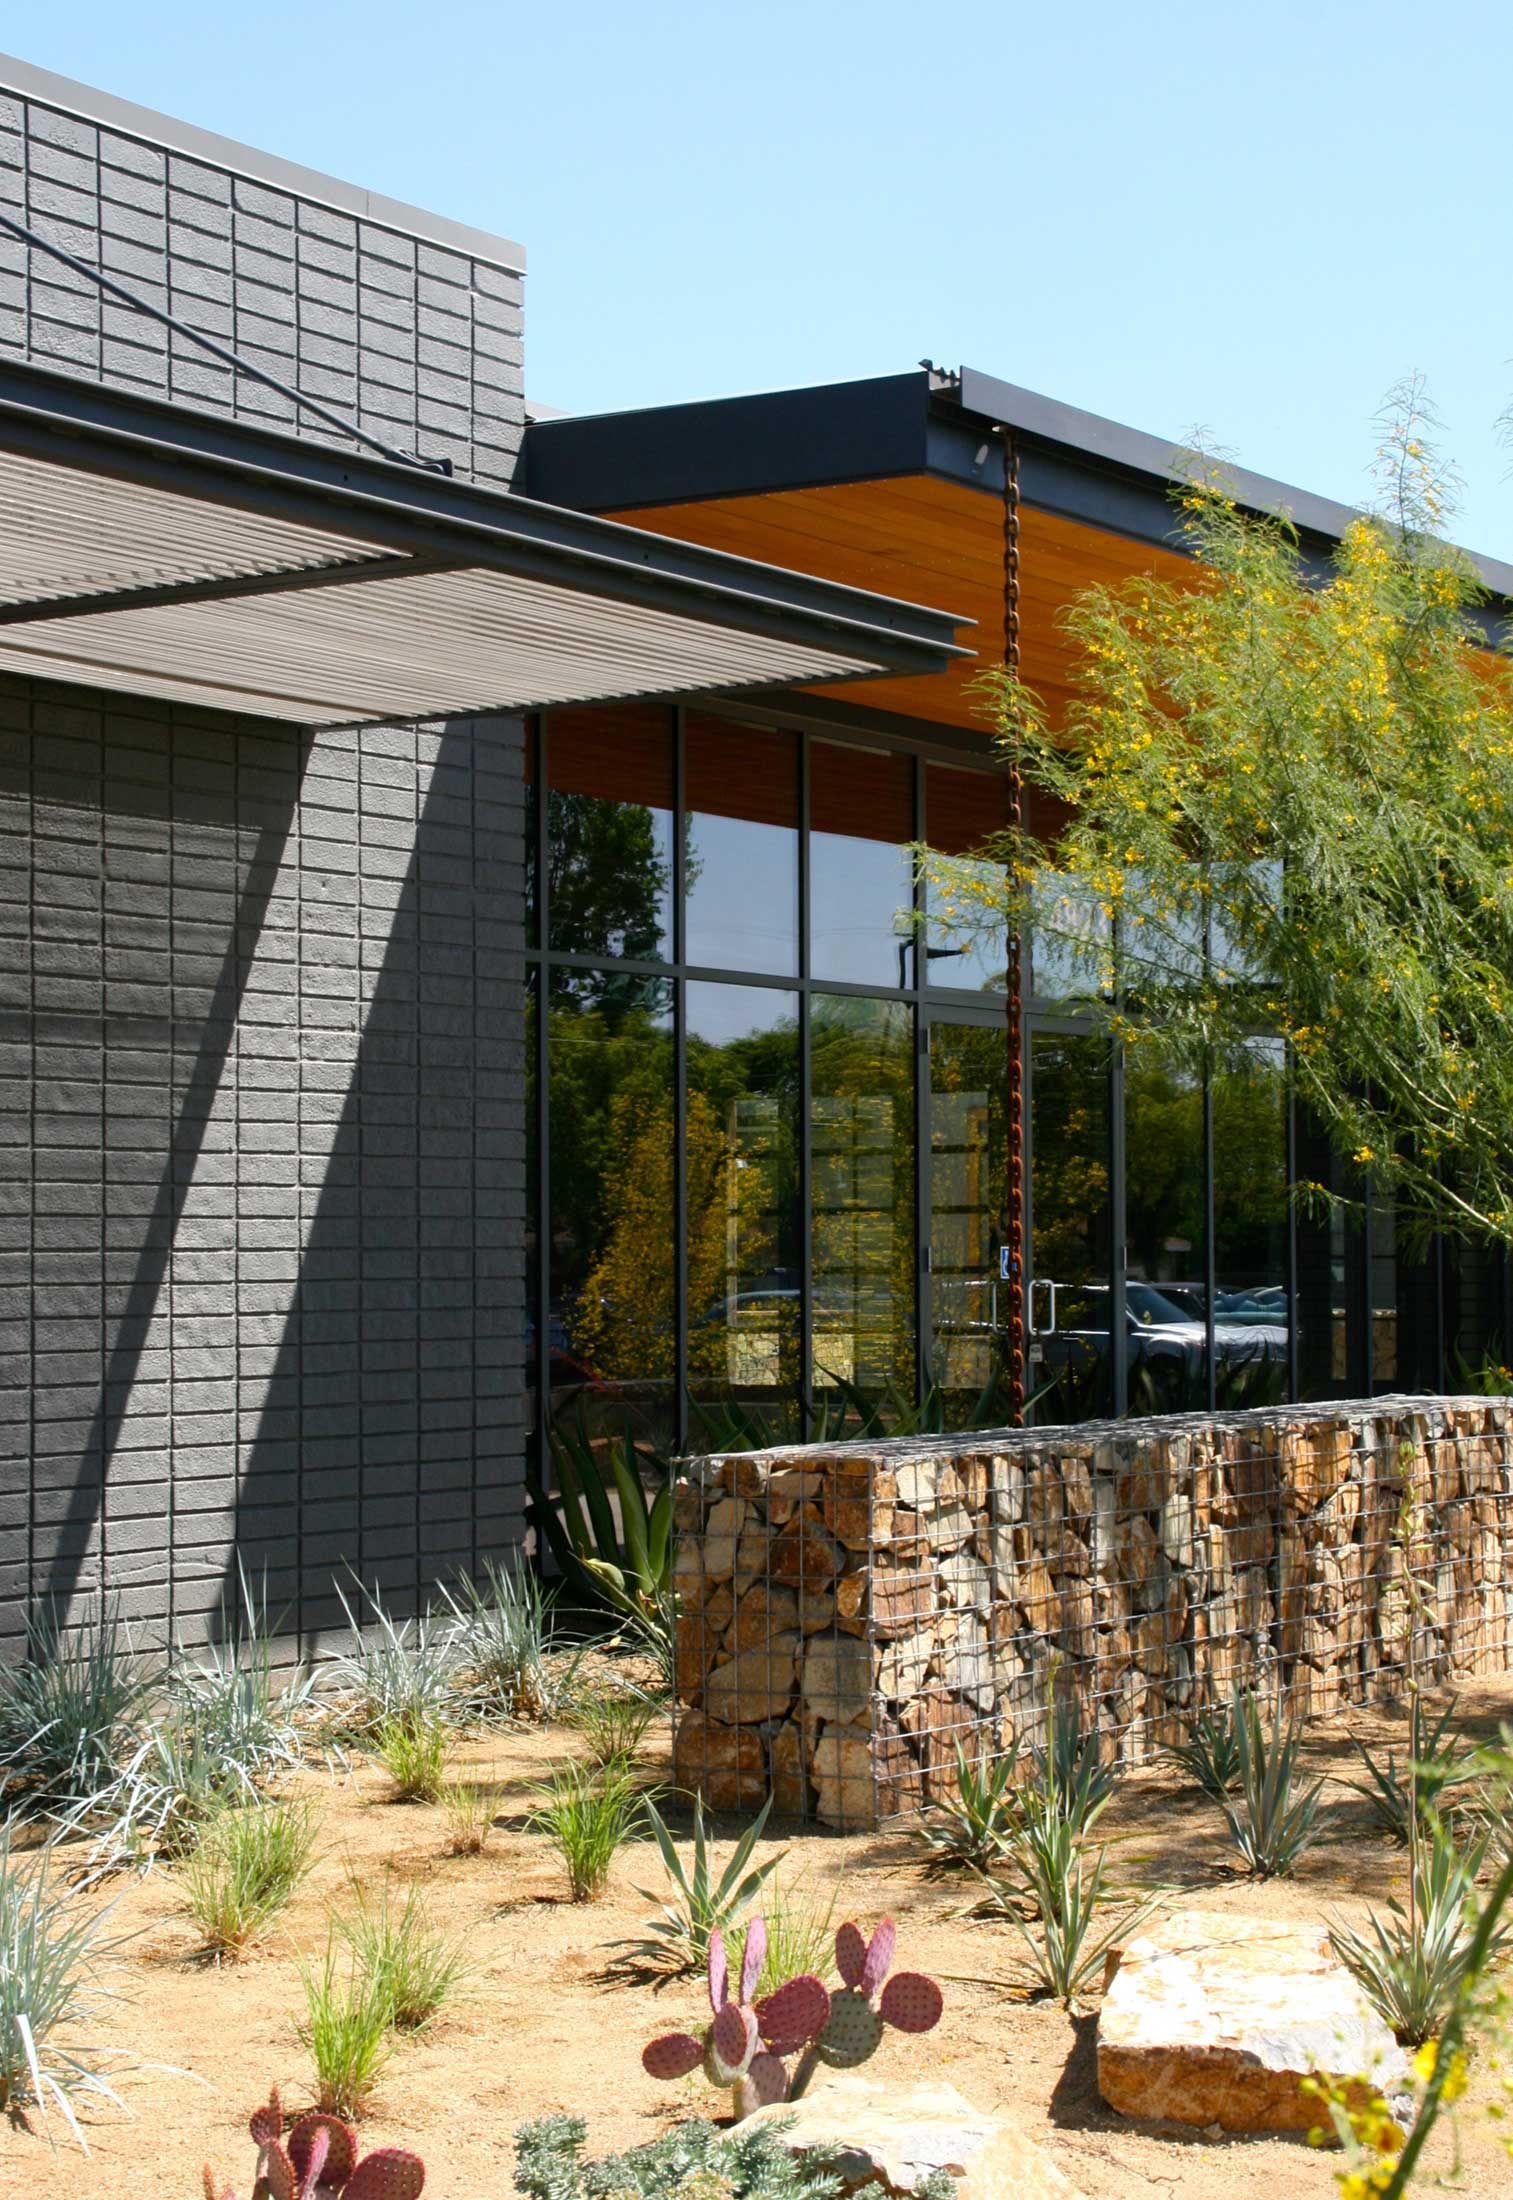 modern-architecture-commercial-building-worsplace-sustainable-adaptive-california-shubindonaldson-ranch-05